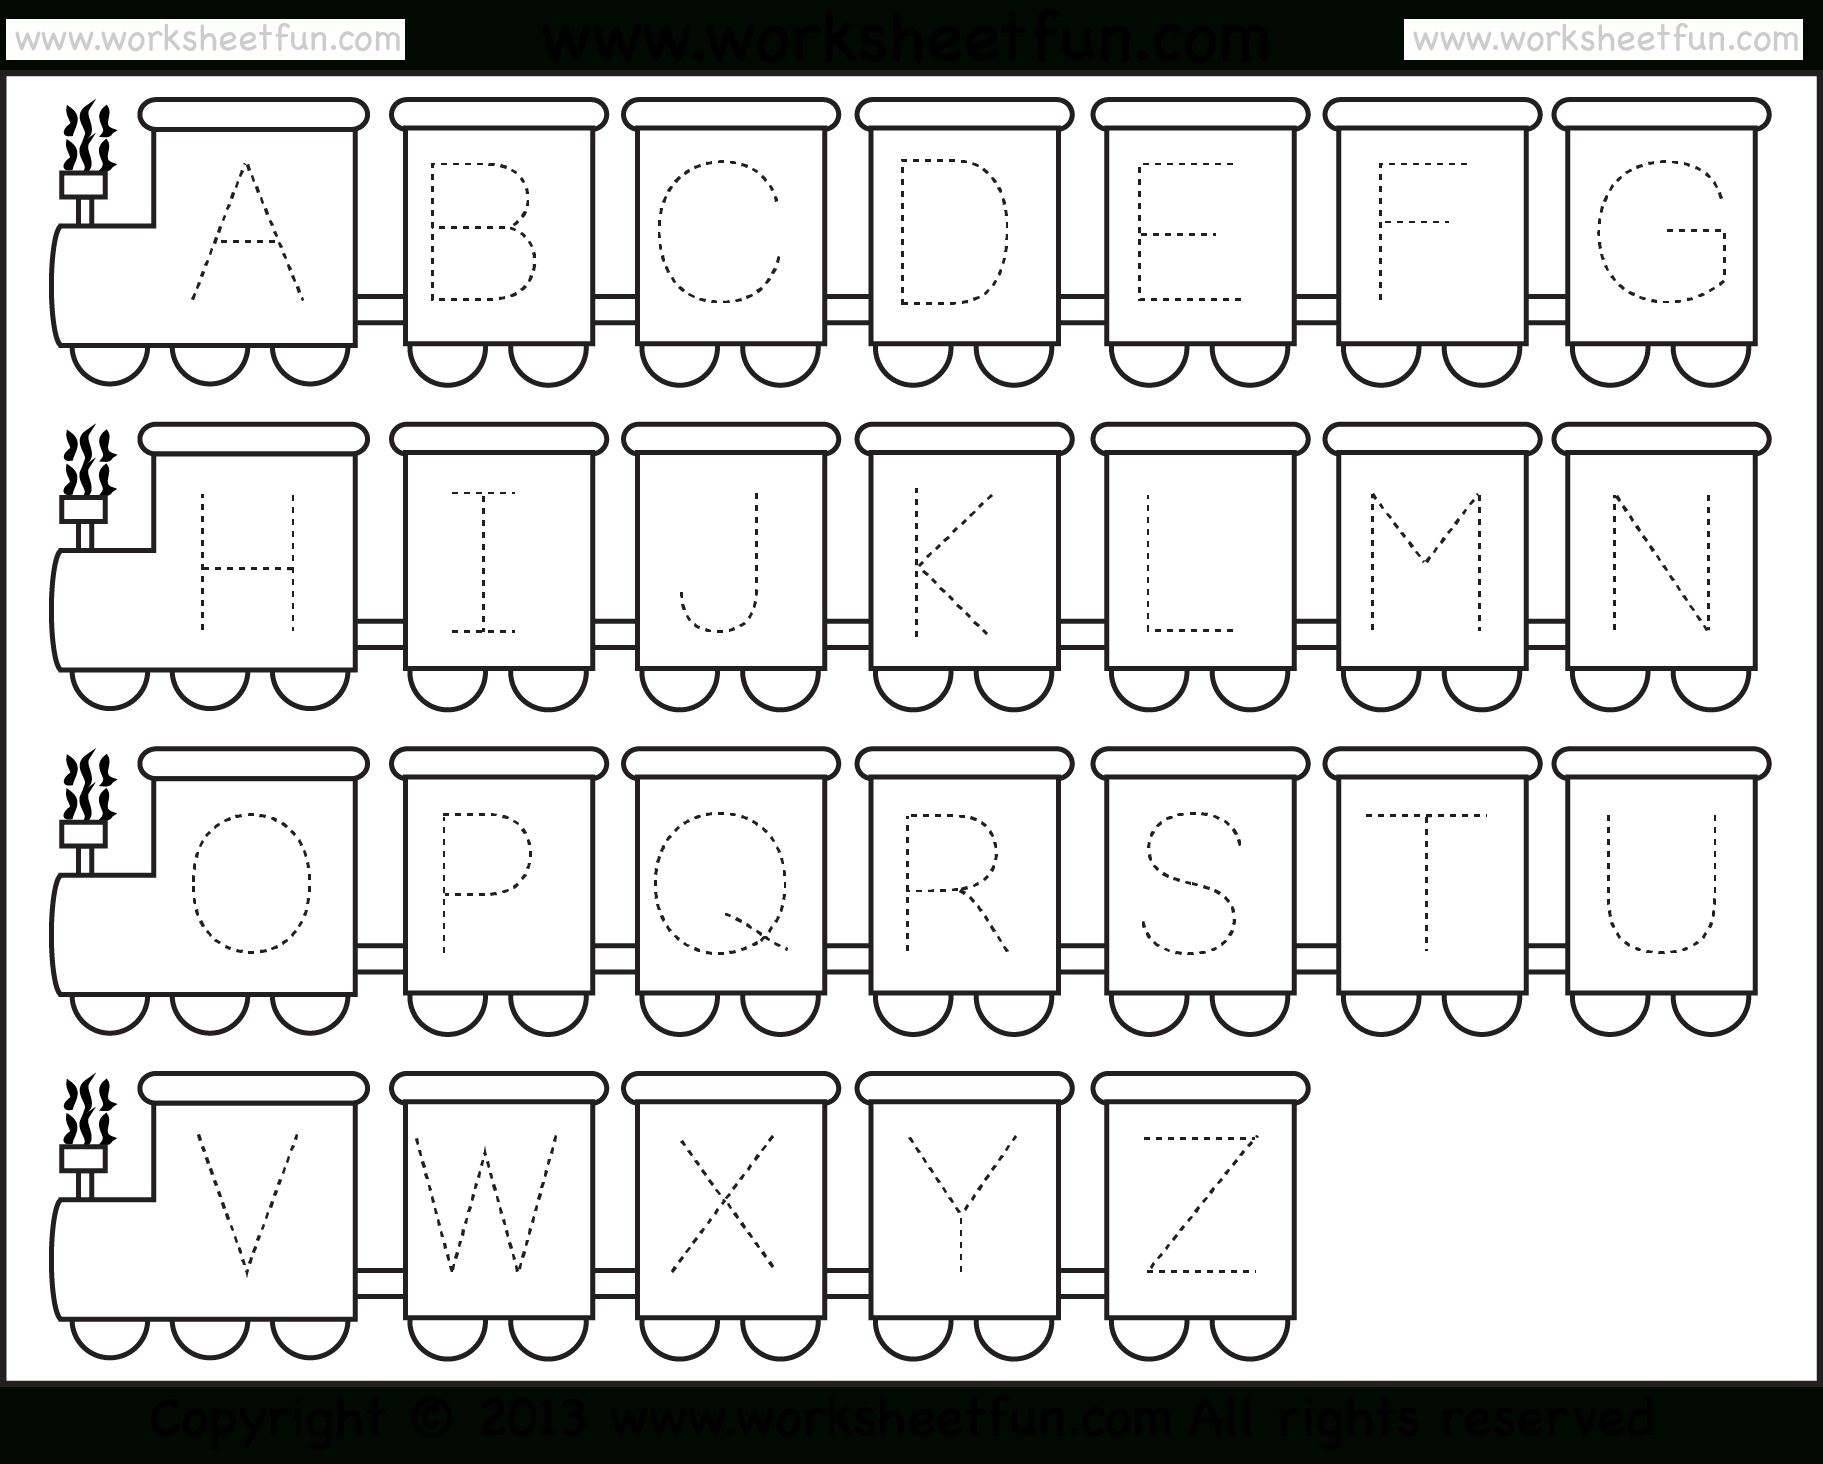 Letter Tracing Worksheet – Train Theme / Free Printable Worksheets - Free Printable Alphabet Pages